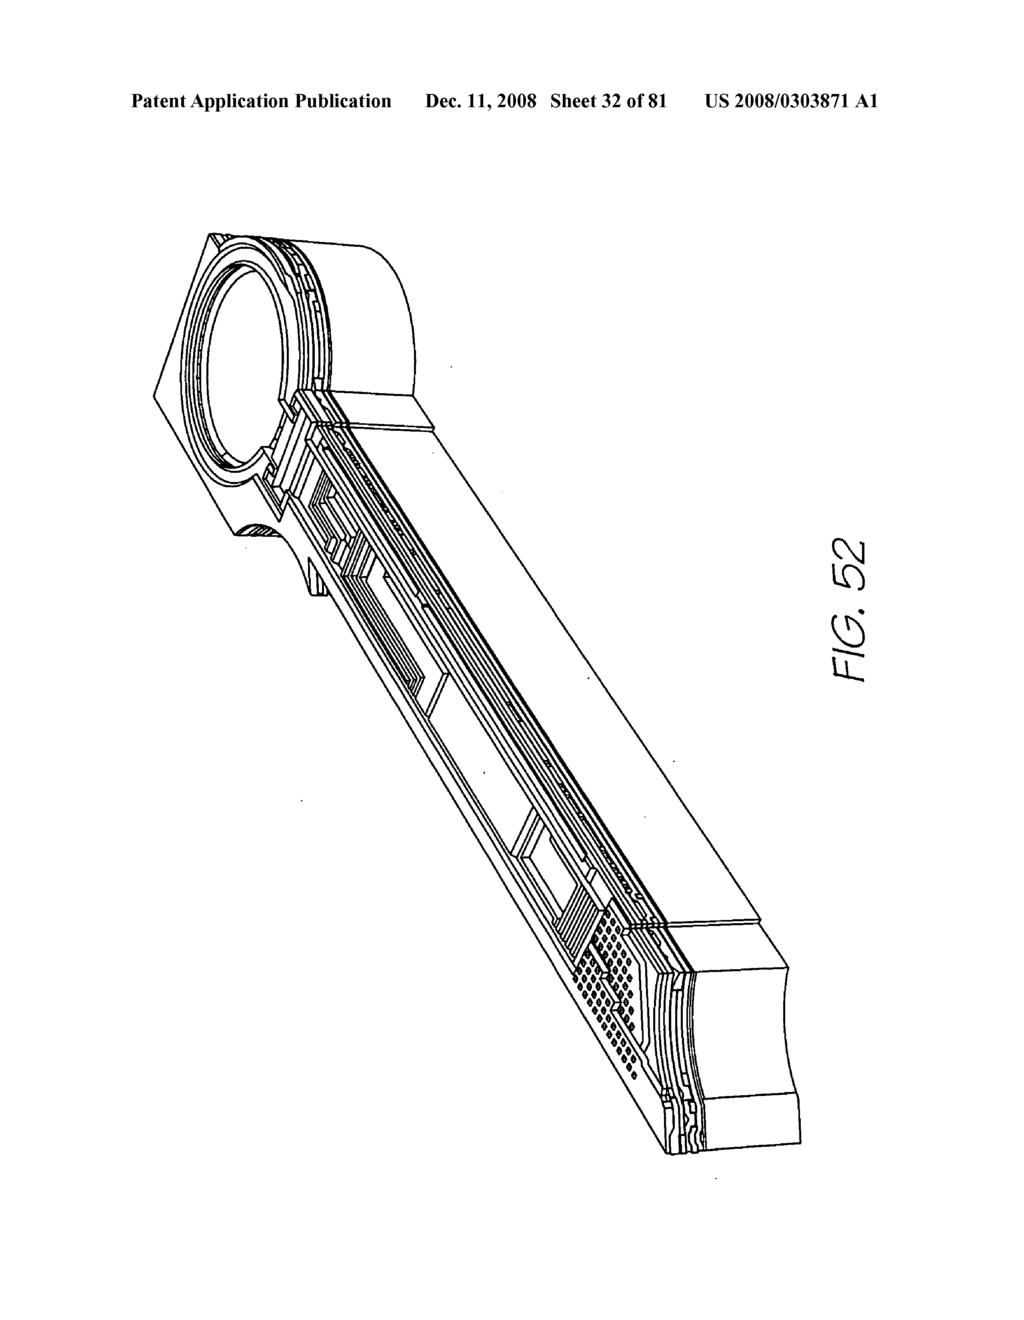 NOZZLE ASSEMBLY FOR AN INKJET PRINTER FOR EJECTING A LOW VOLUME DROPLET - diagram, schematic, and image 33